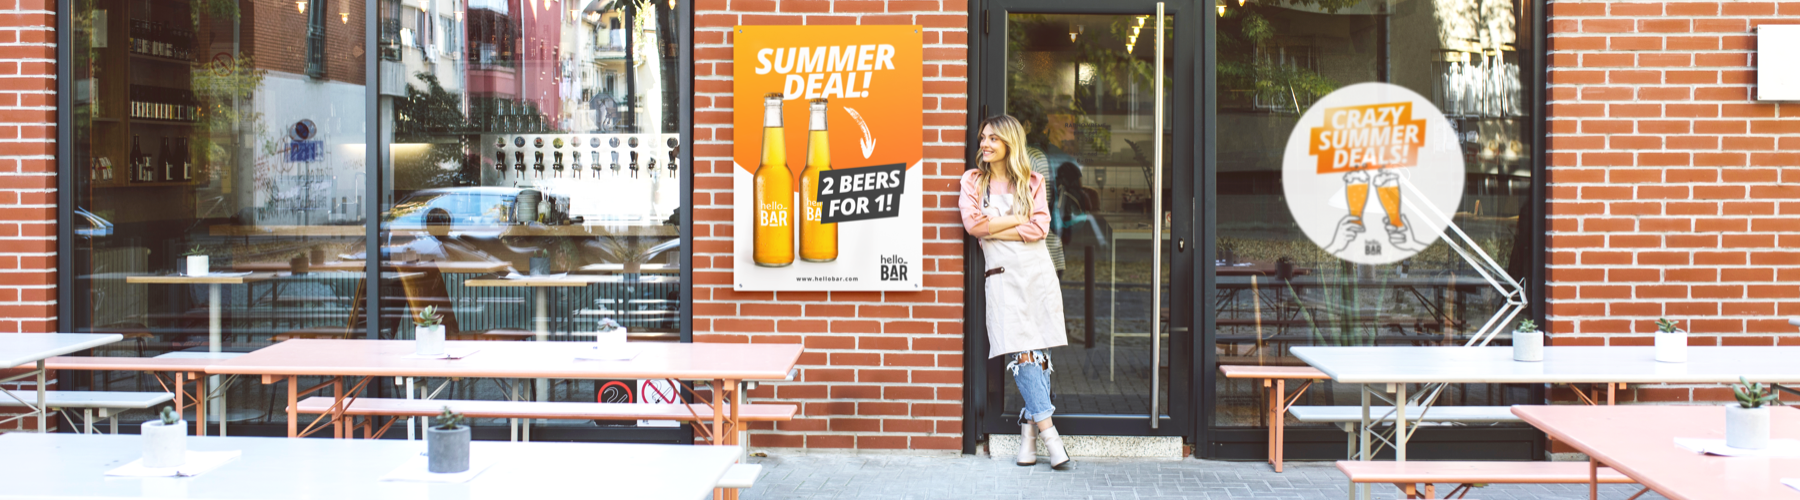 10 Tips For Your Summer Marketing Campaigns